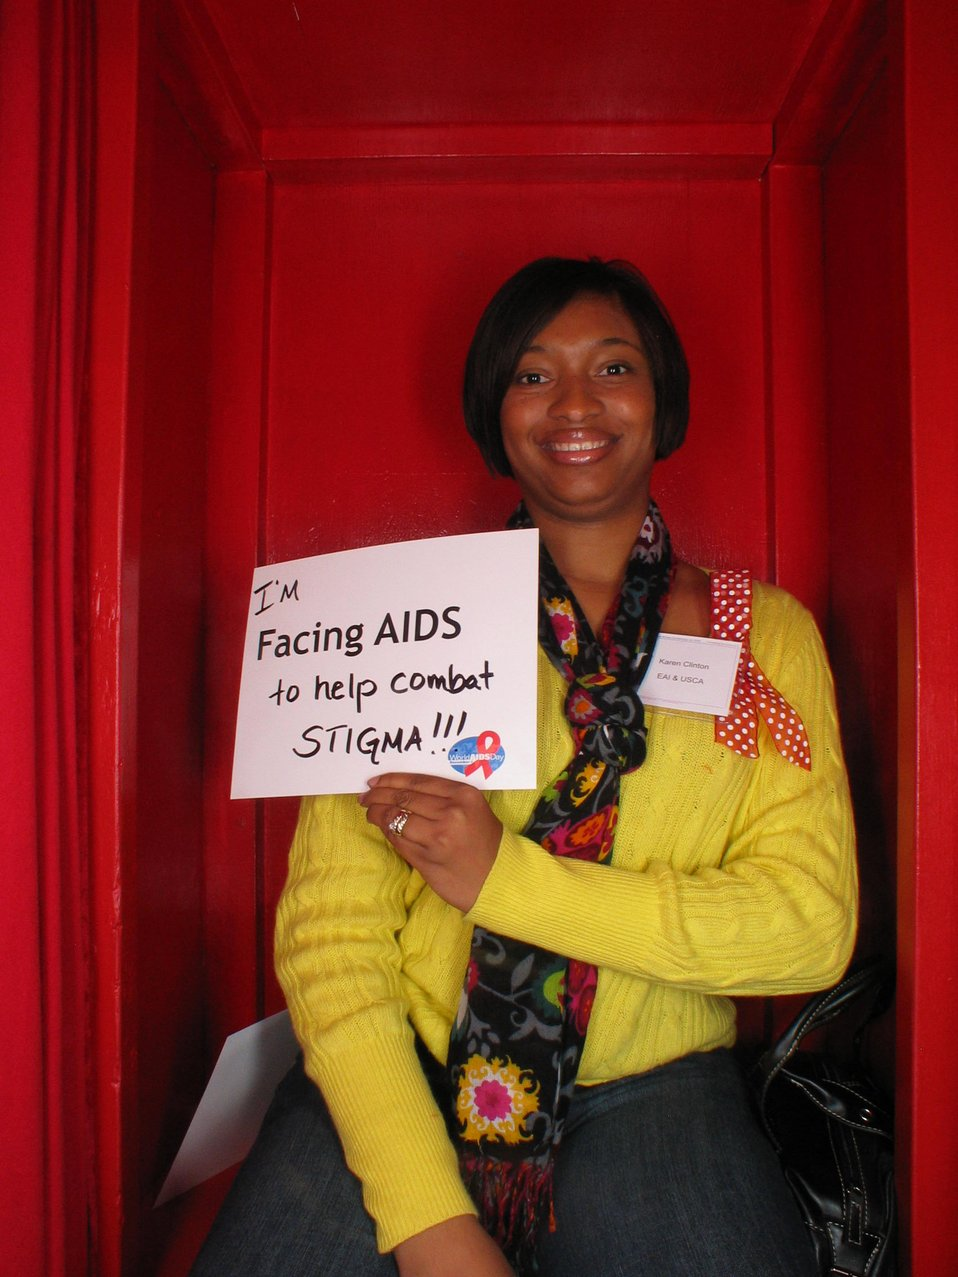 I'm Facing AIDS to help combat stigma!!!